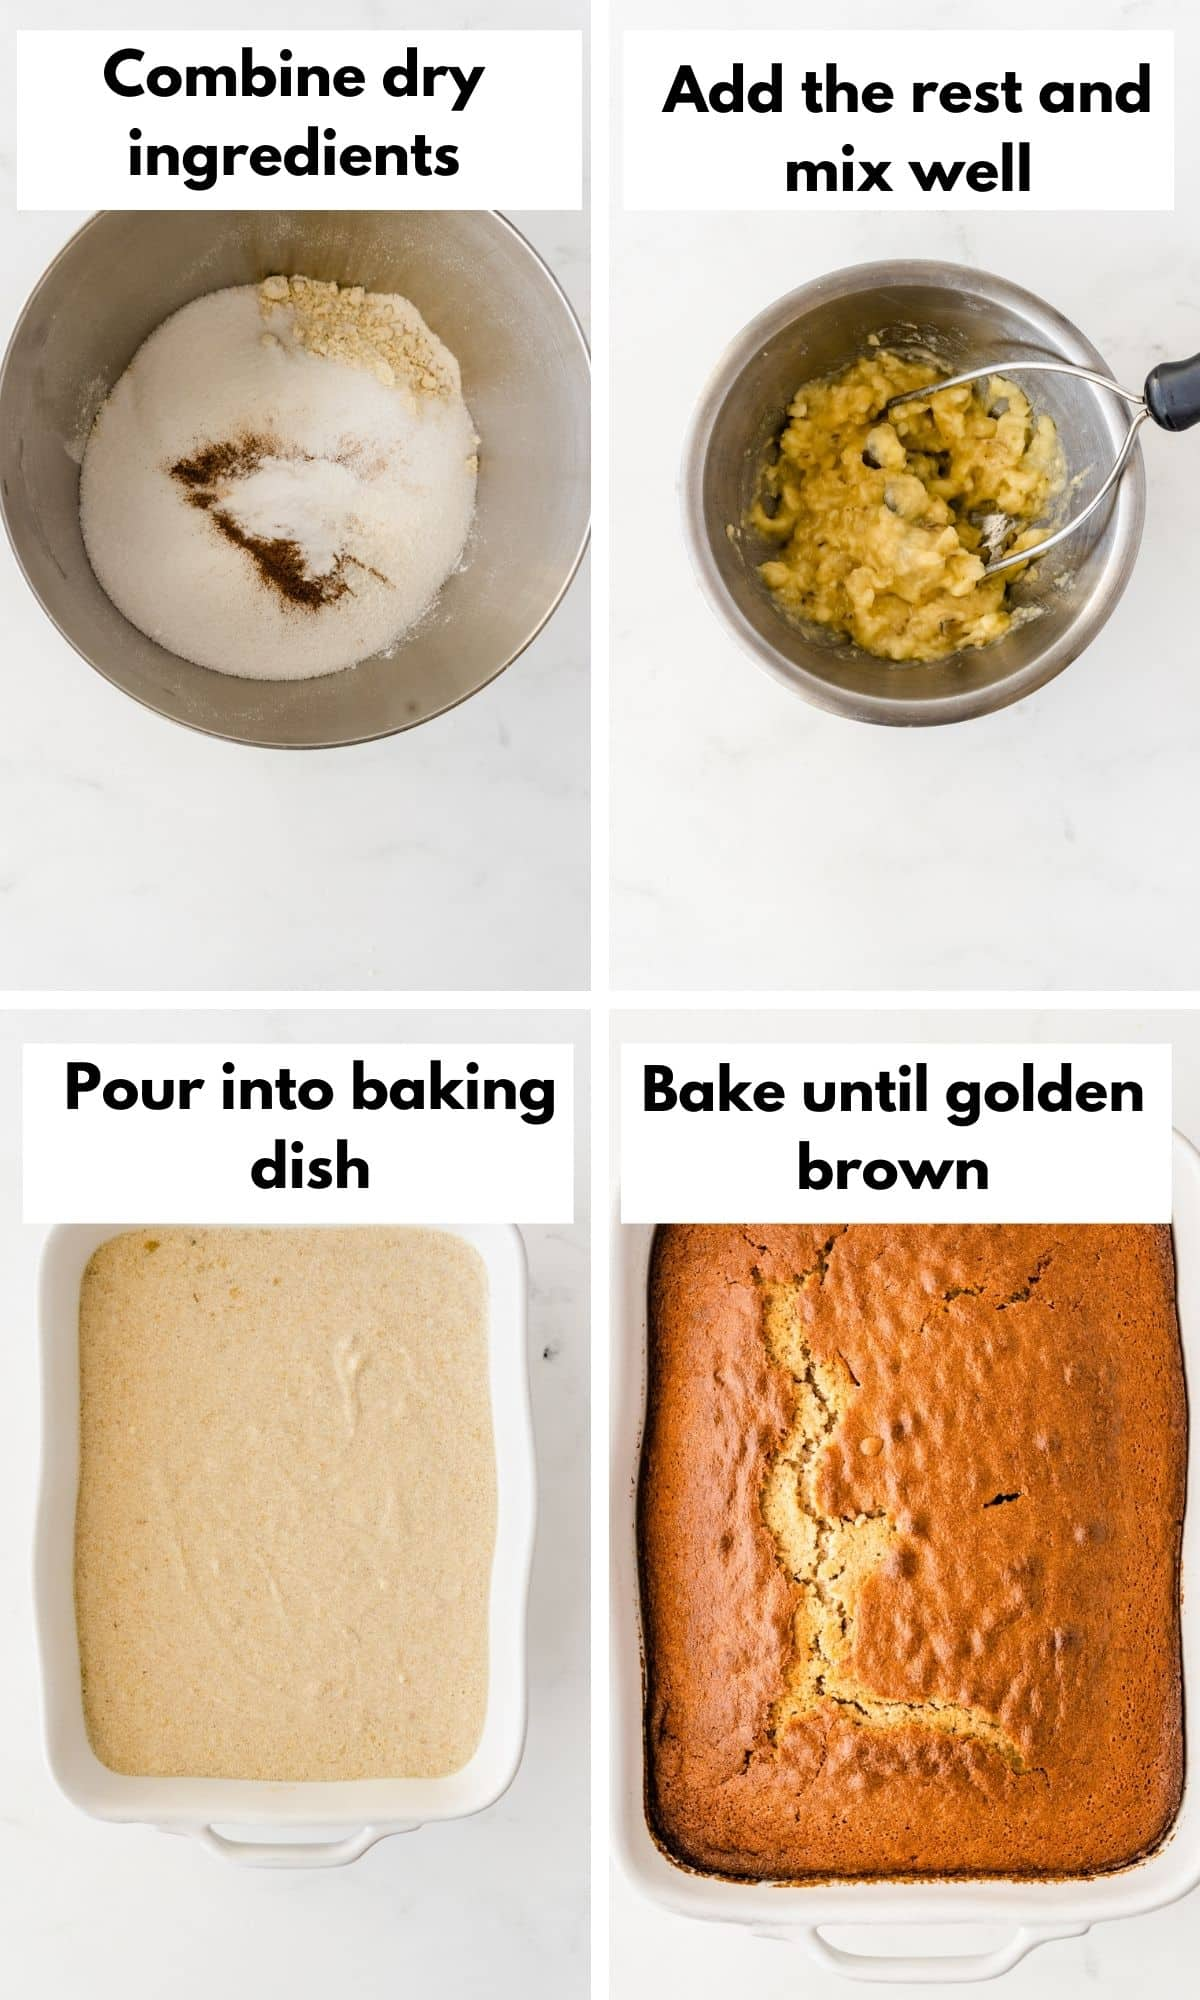 Pictures showing how to make the cake